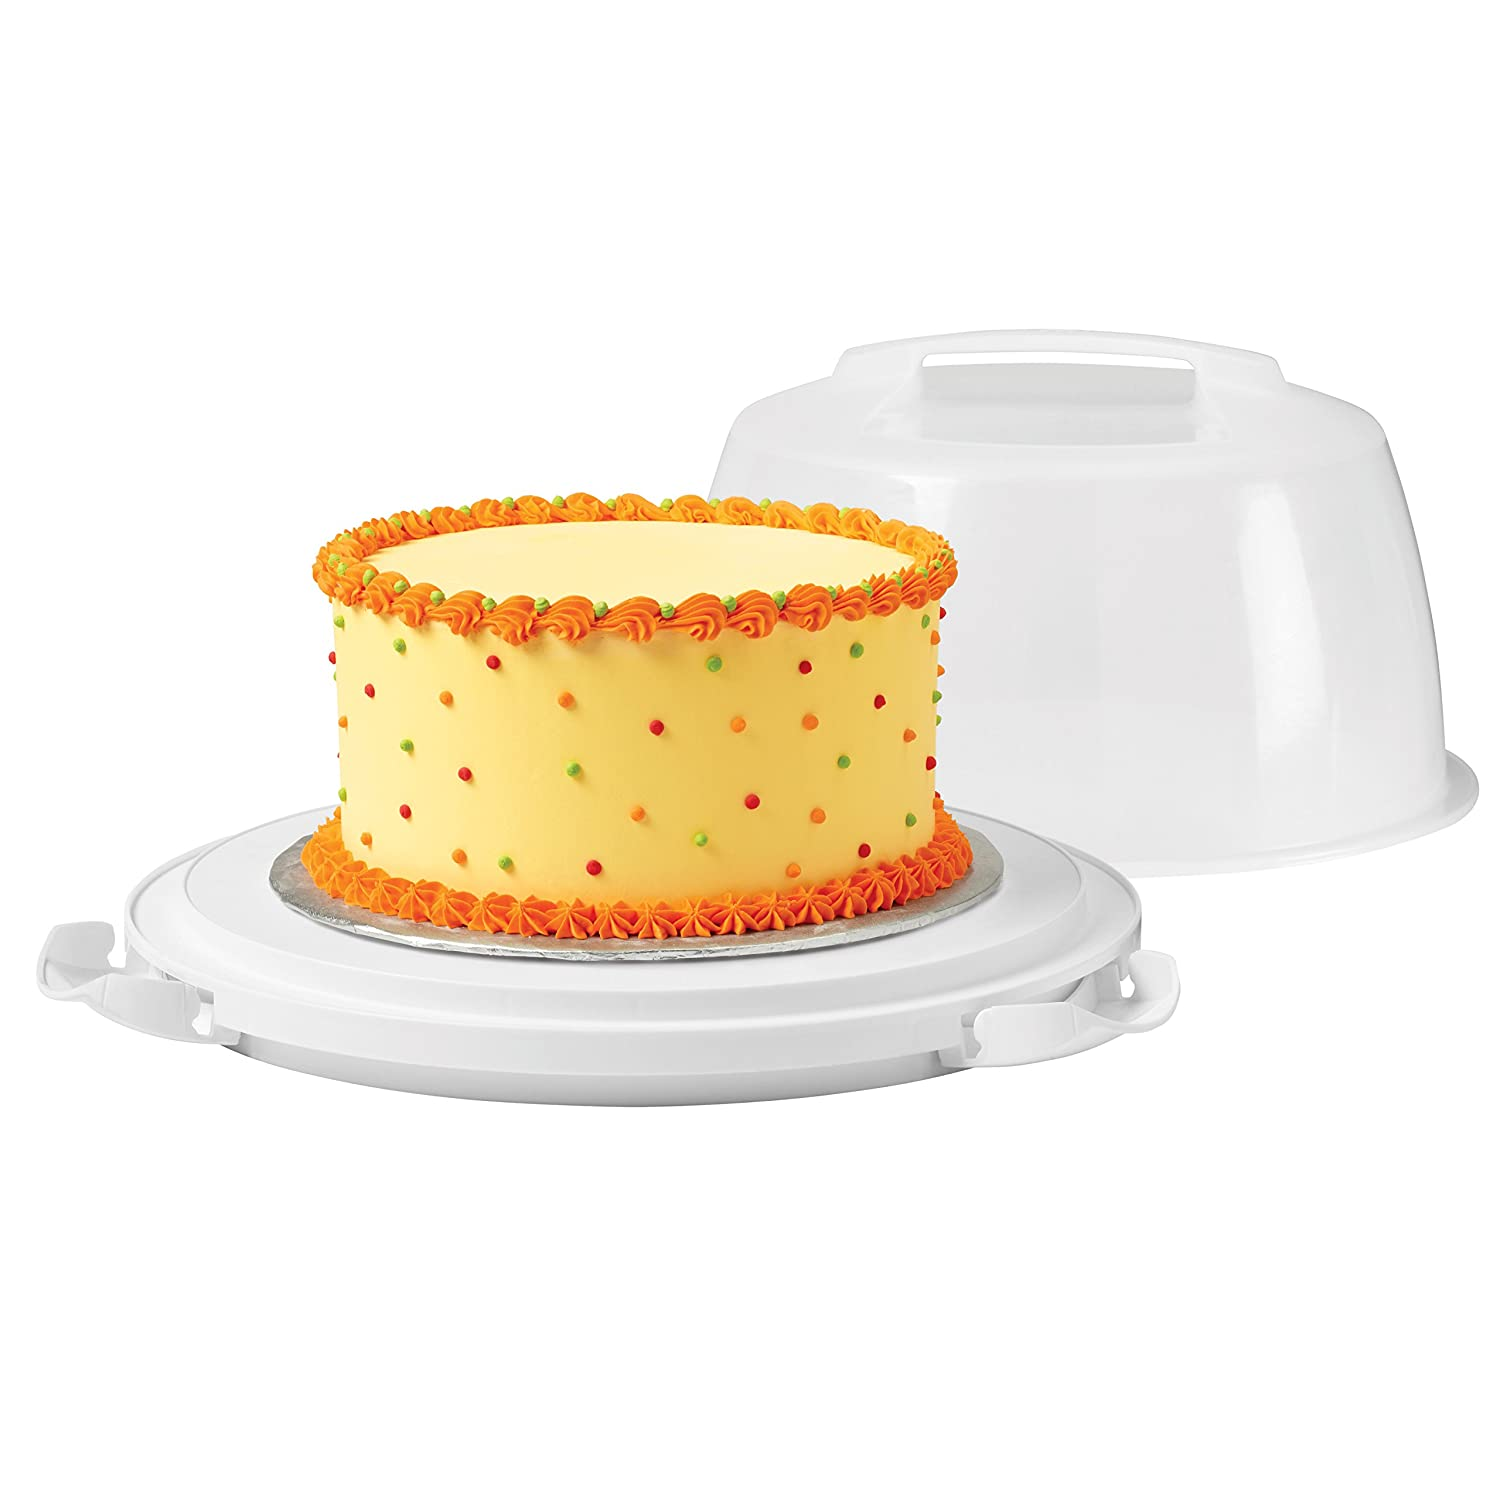 Amazon.com: WIlton Cake Carrier and Server with Locking Lid: Kitchen ...